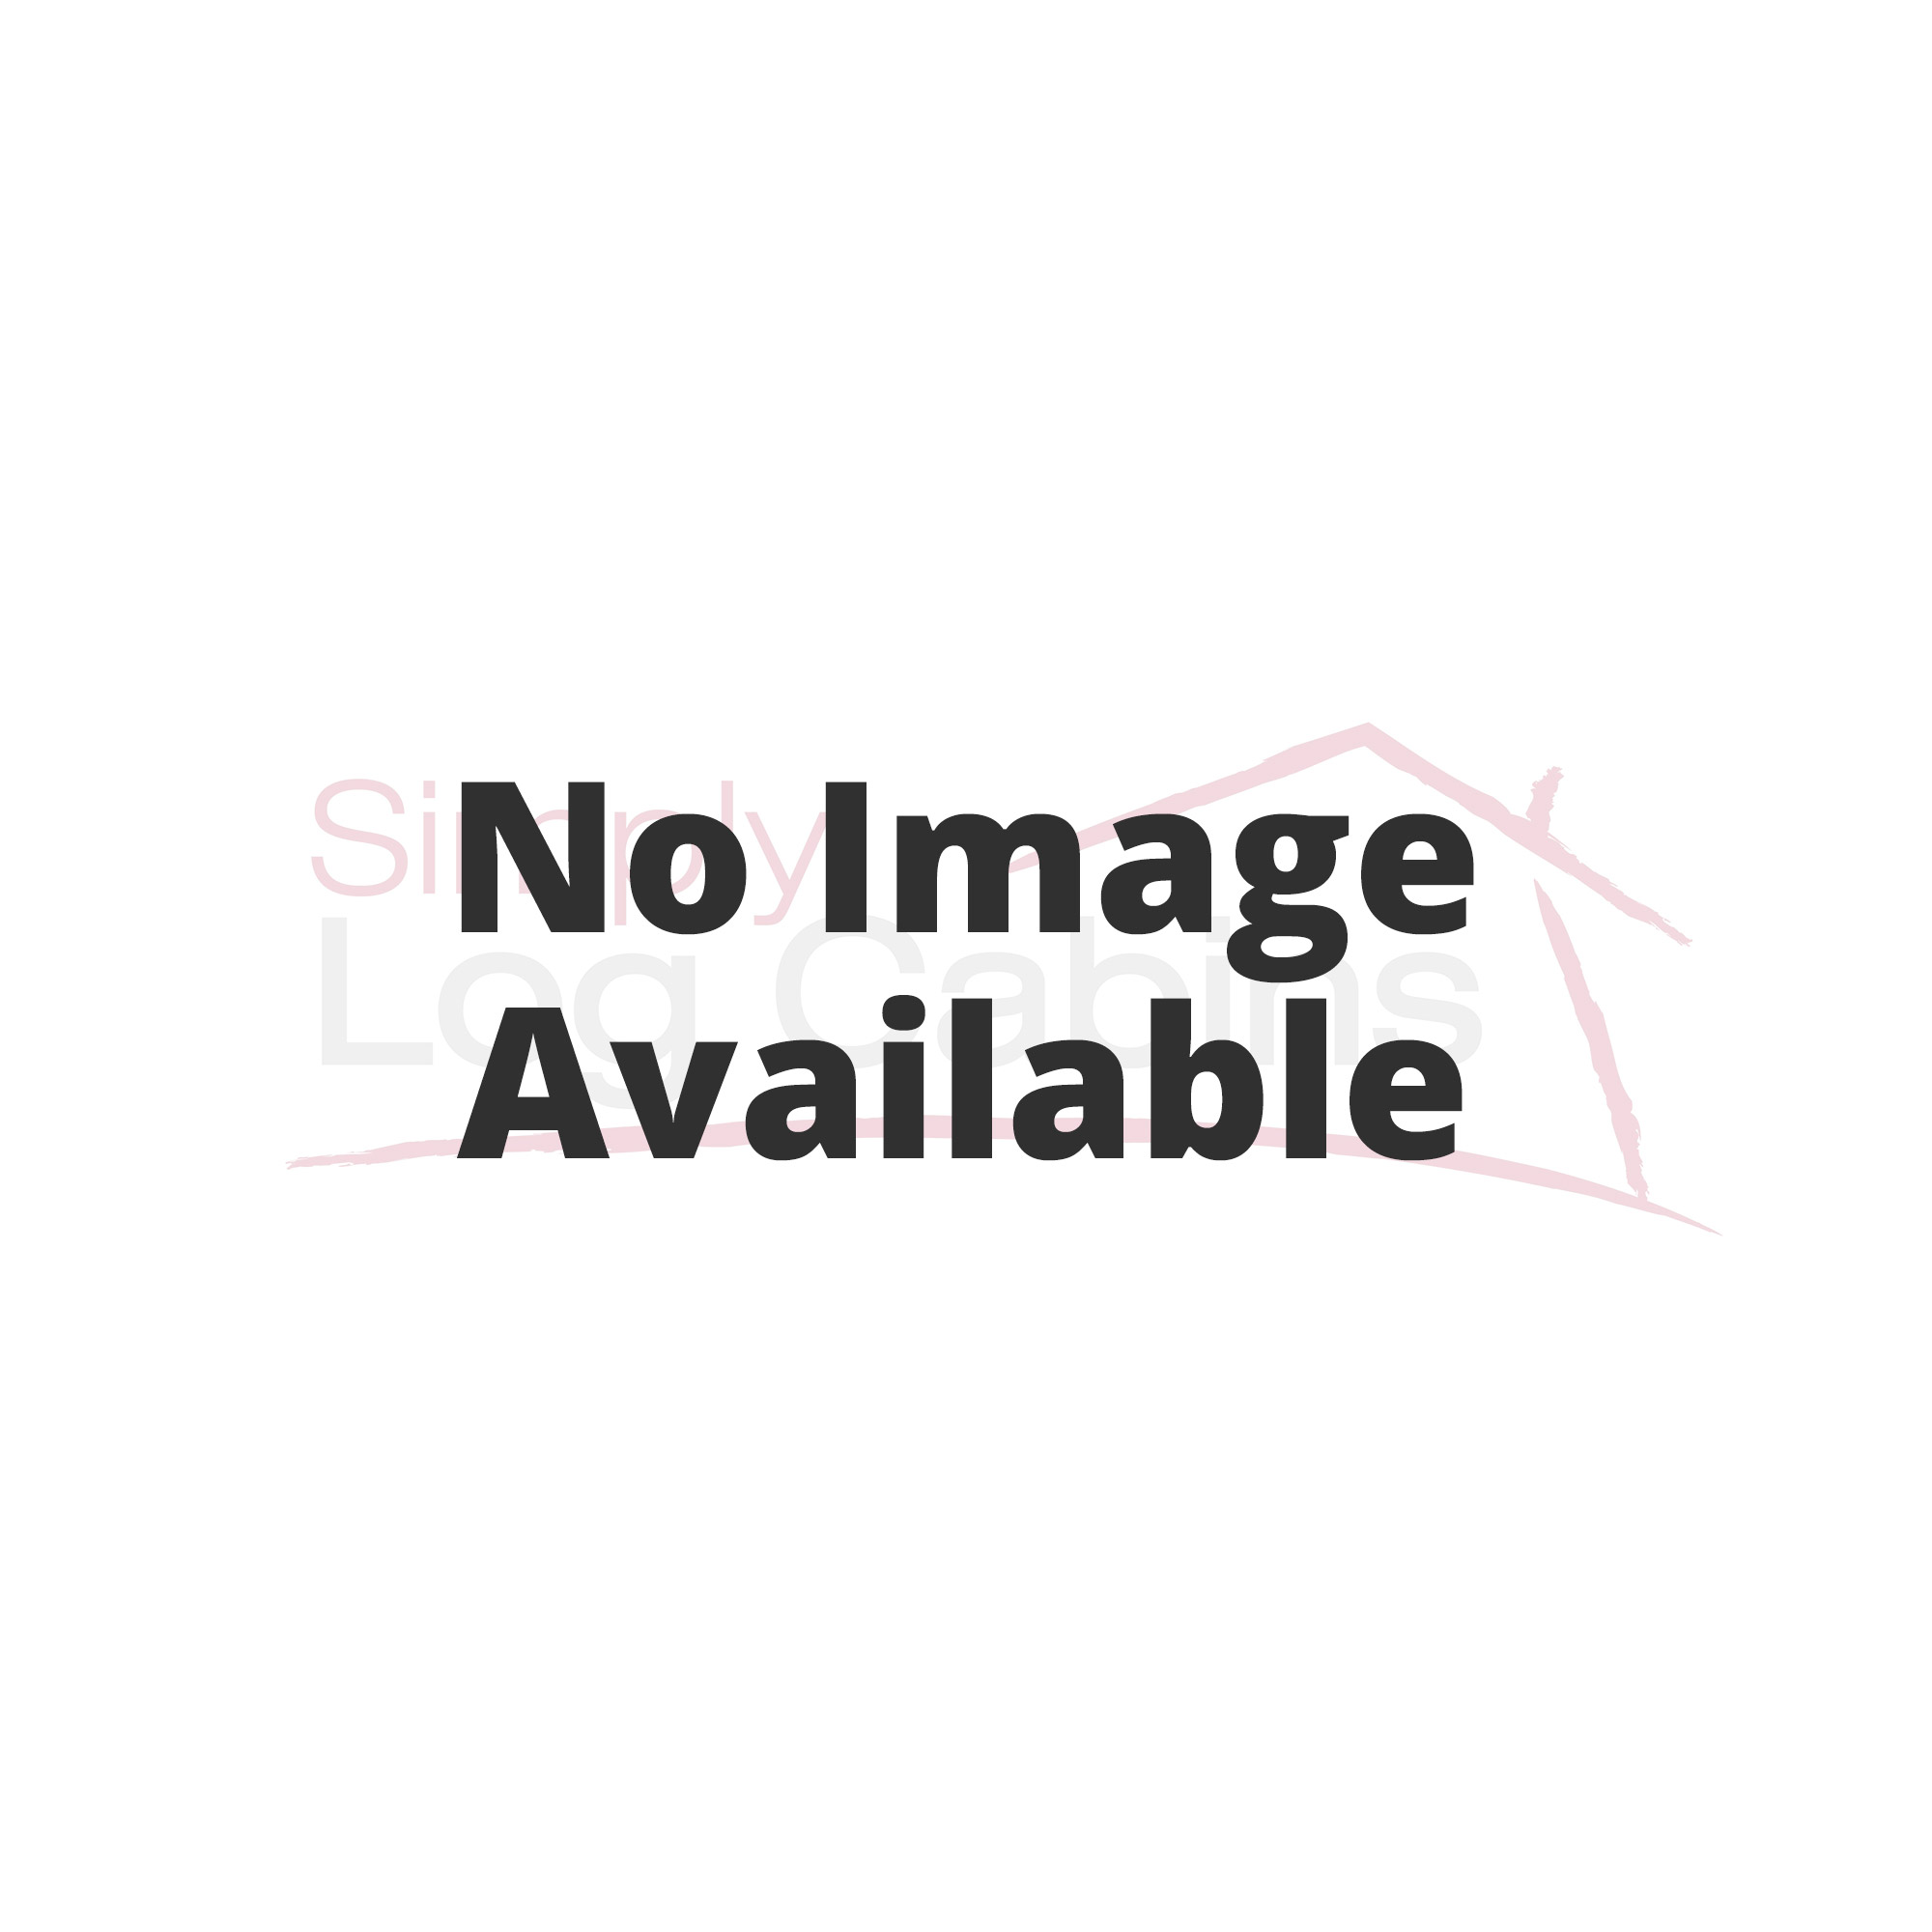 5.0m x 3.0m Right Corner Lodge Plus with Store